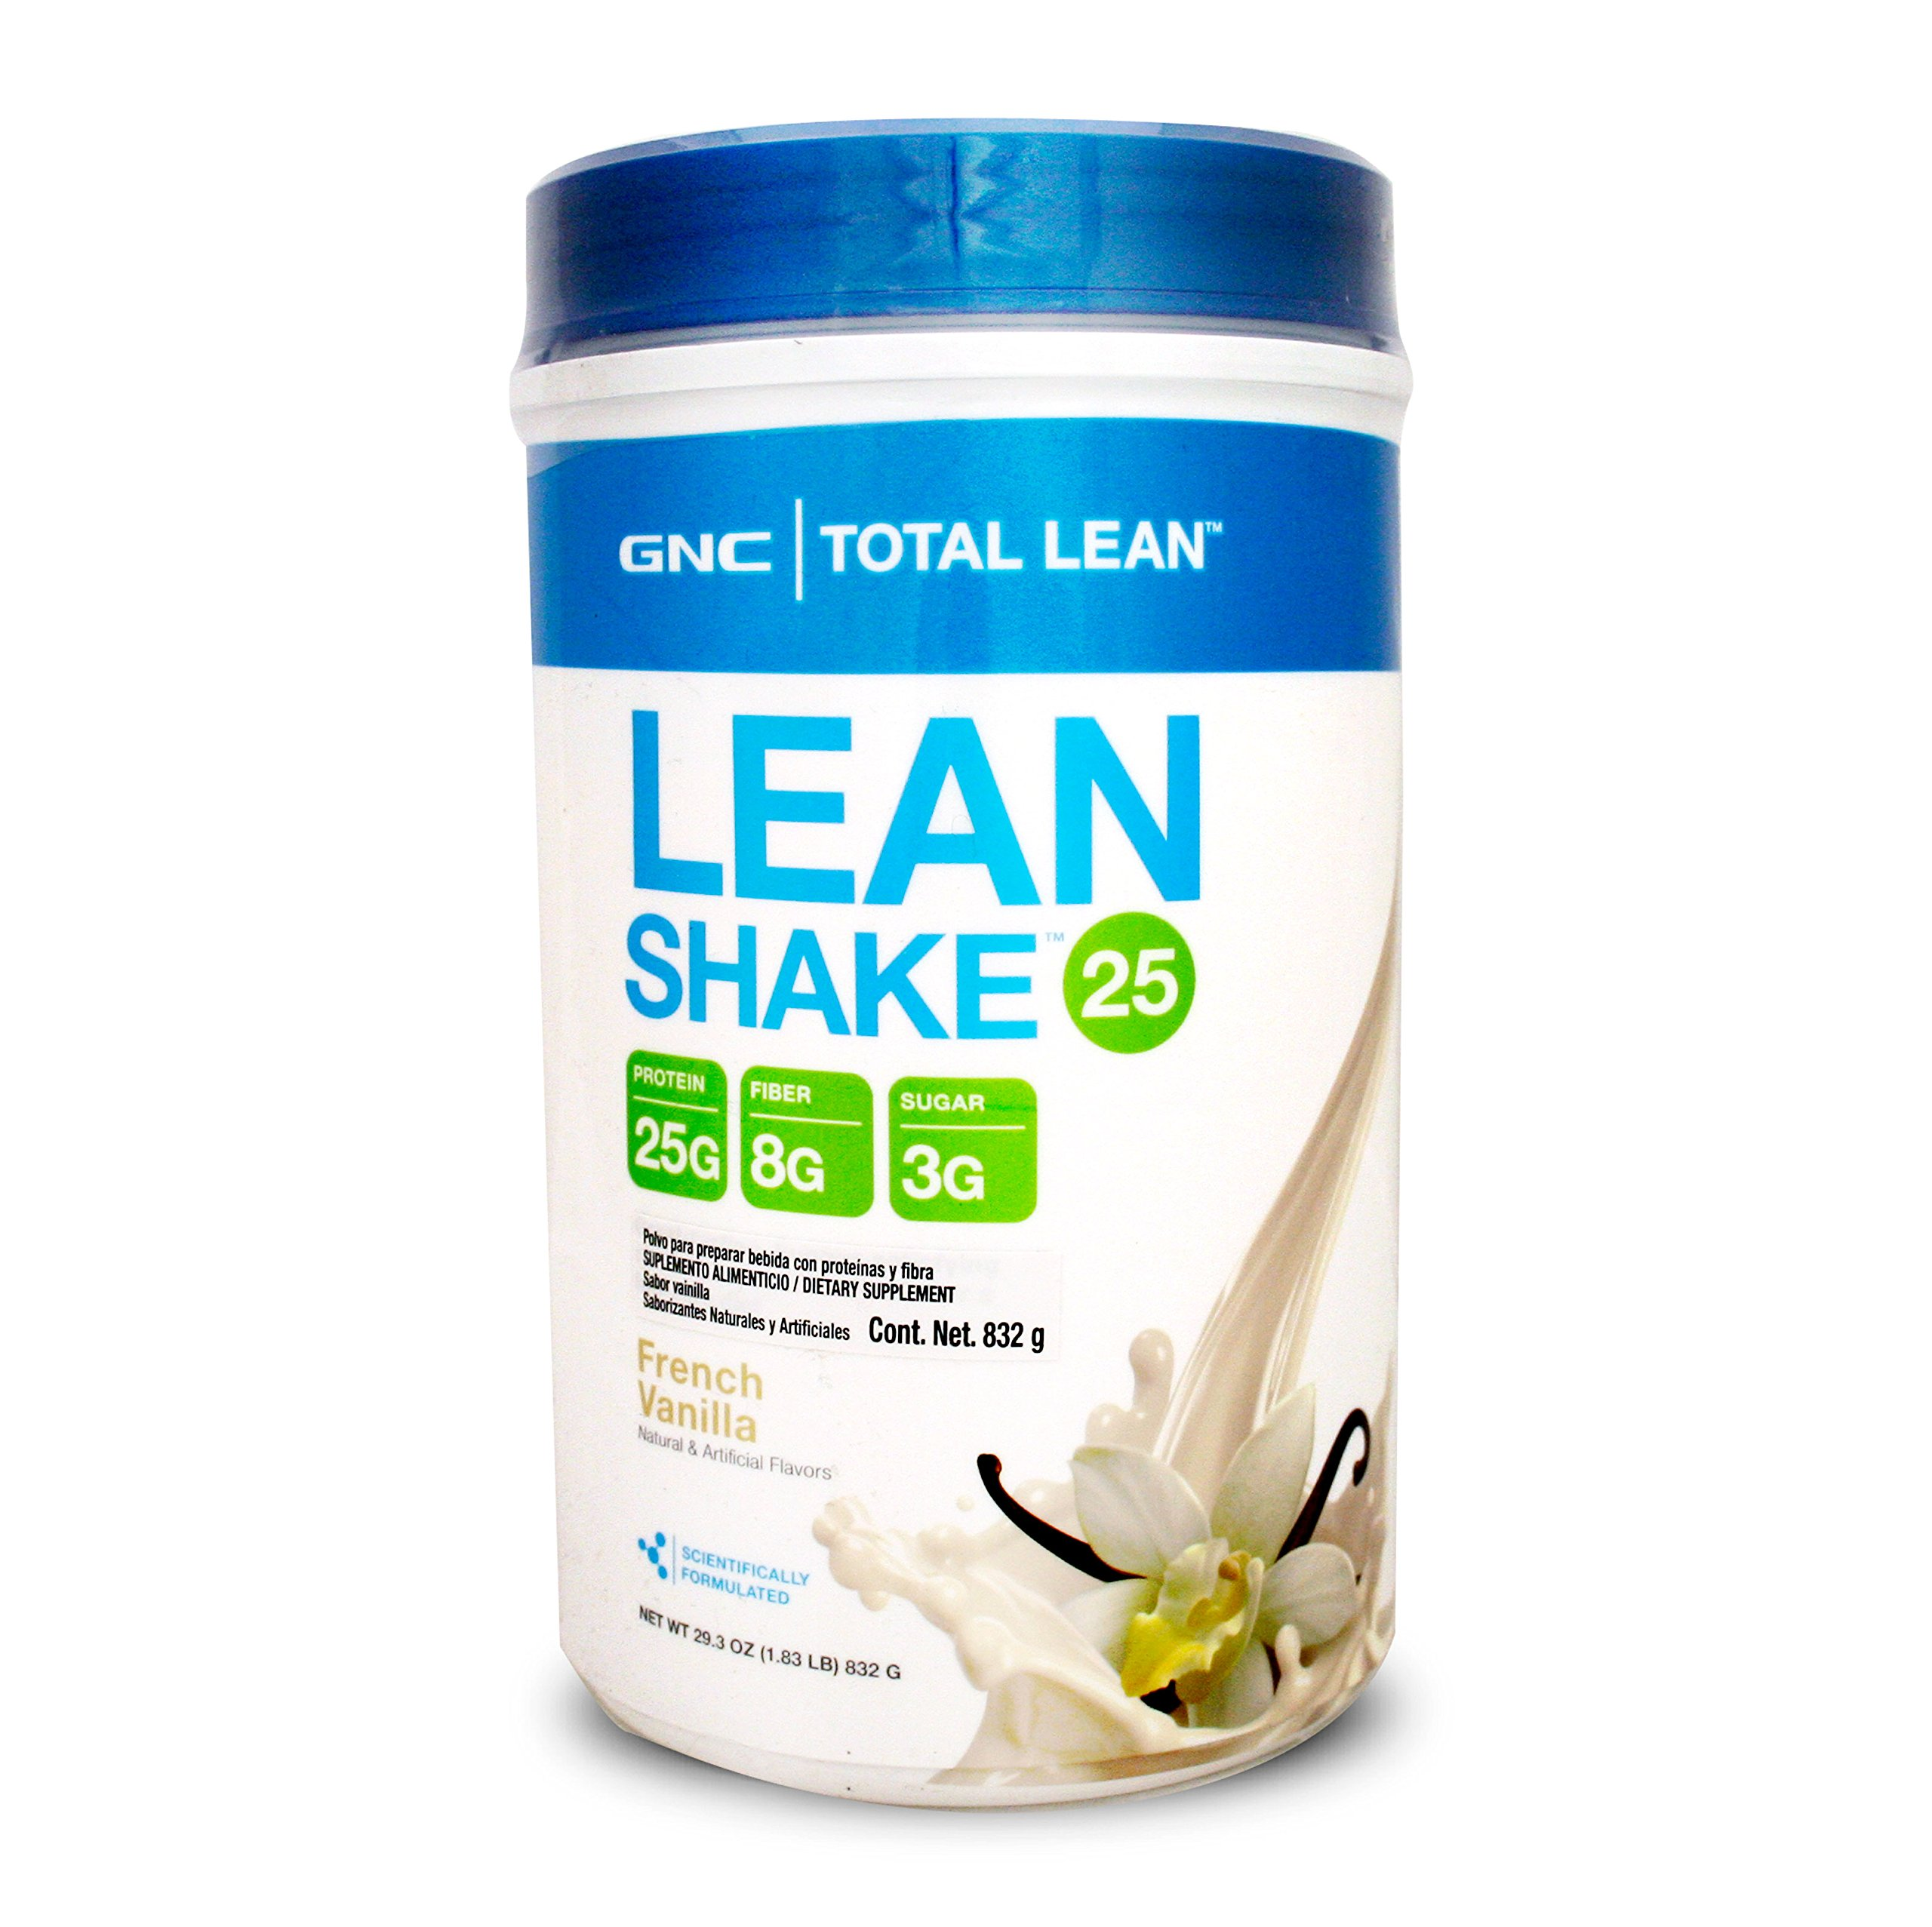 GNC Total Lean Meal Replacement Shake, Promote Lean Muscle Tone Metabolism, French Vanilla - 1.83 Pound